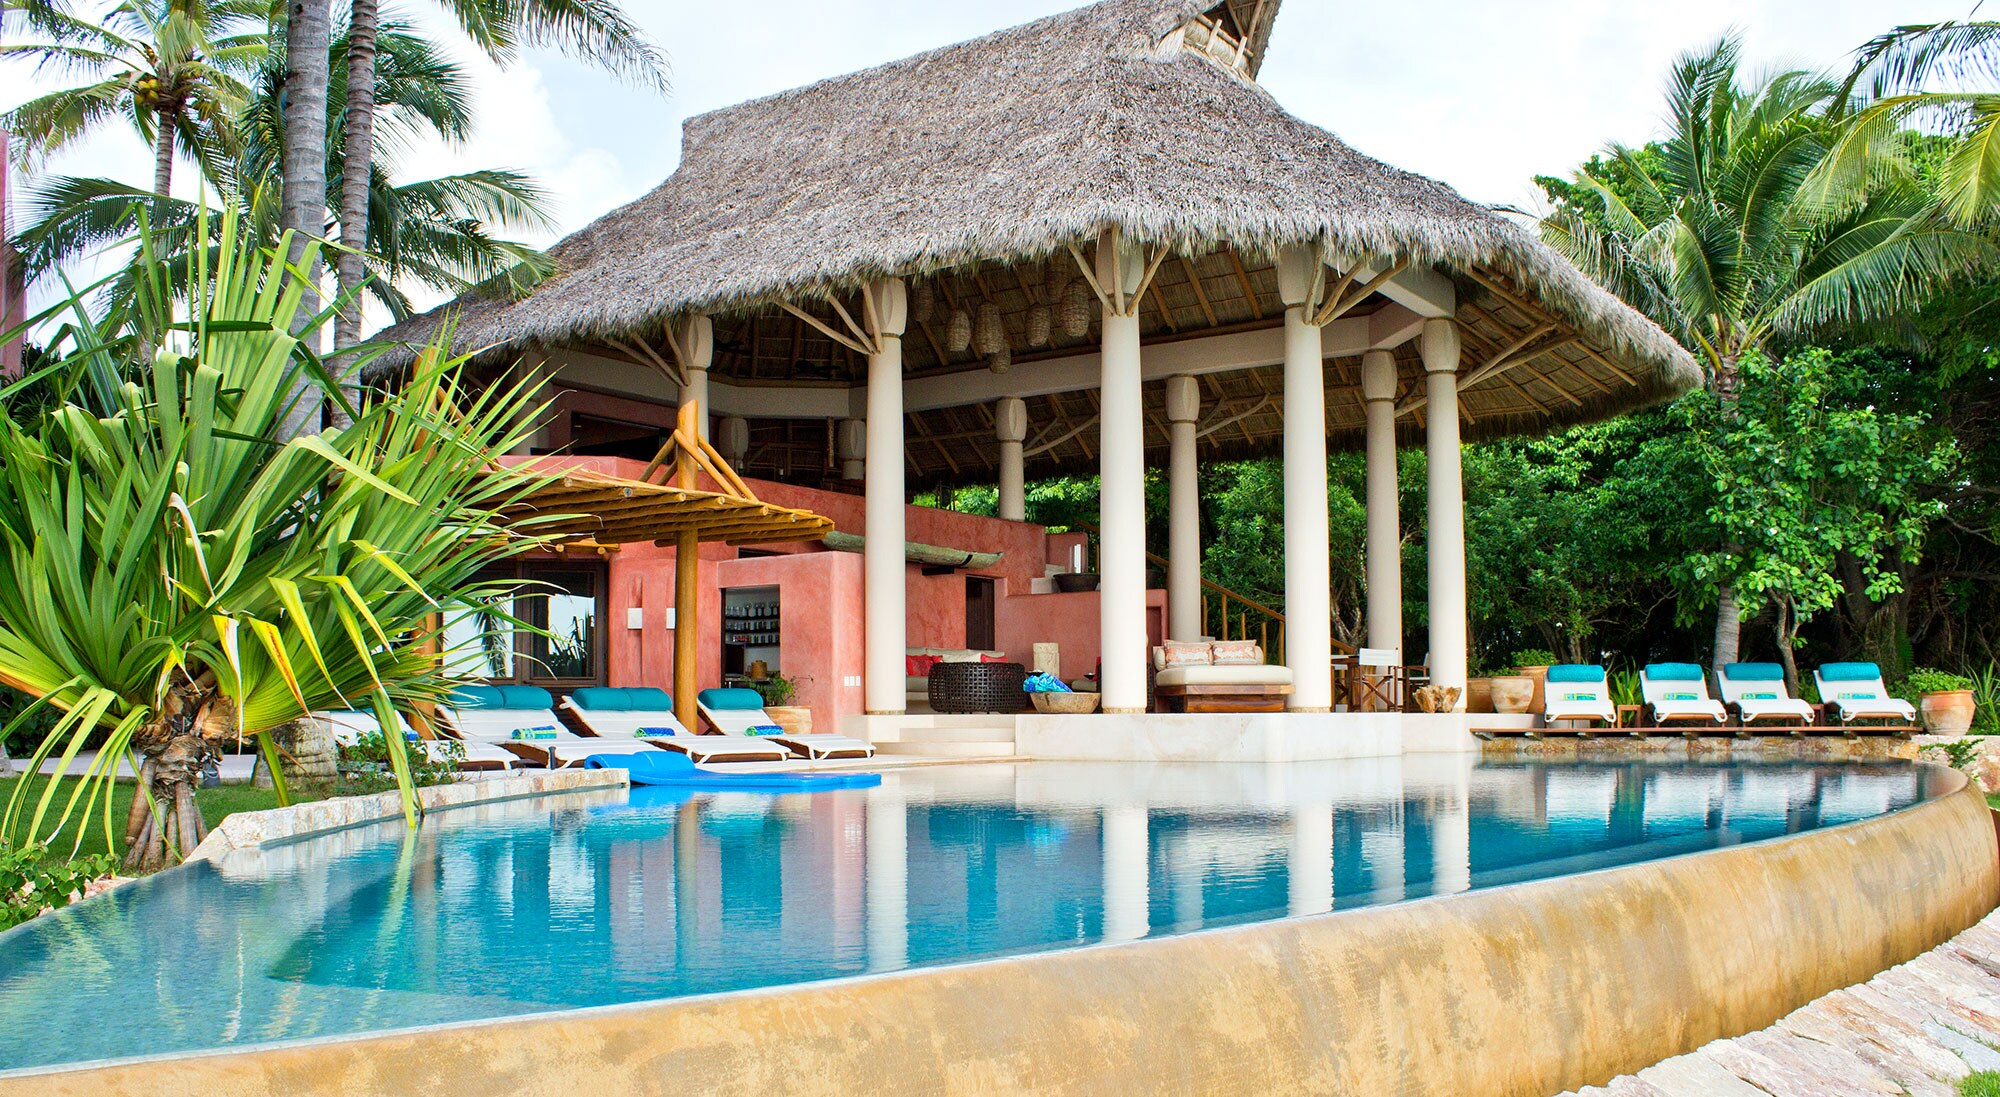 Property Image 1 - Tropical Beachfront Estate for Exotic Family Vacays